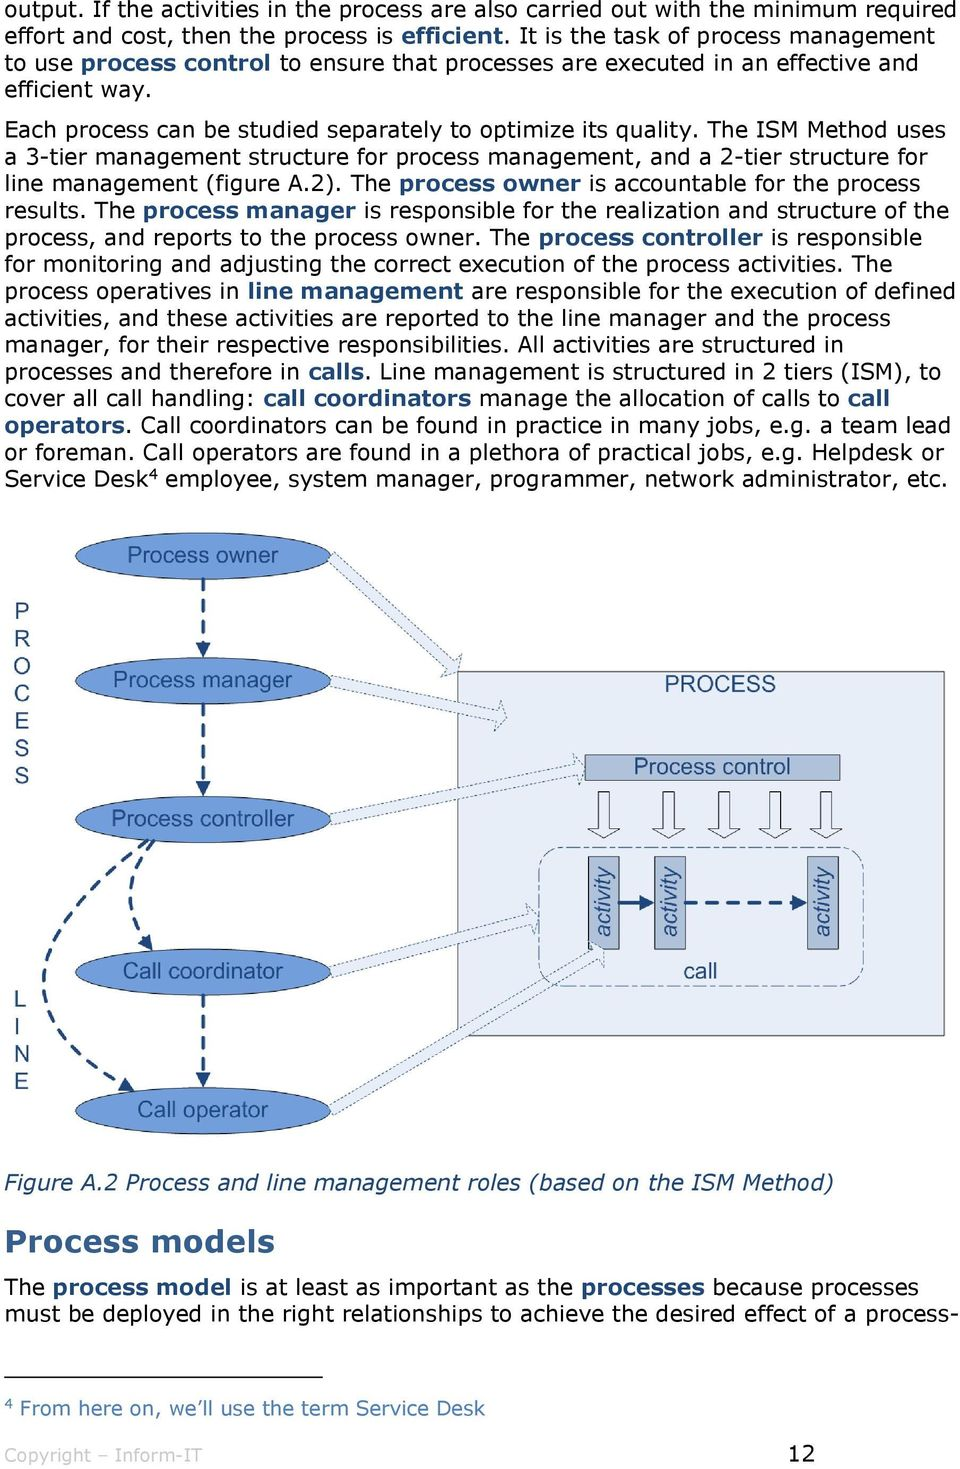 The ISM Method uses a 3-tier management structure for process management, and a 2-tier structure for line management (figure A.2). The process owner is accountable for the process results.